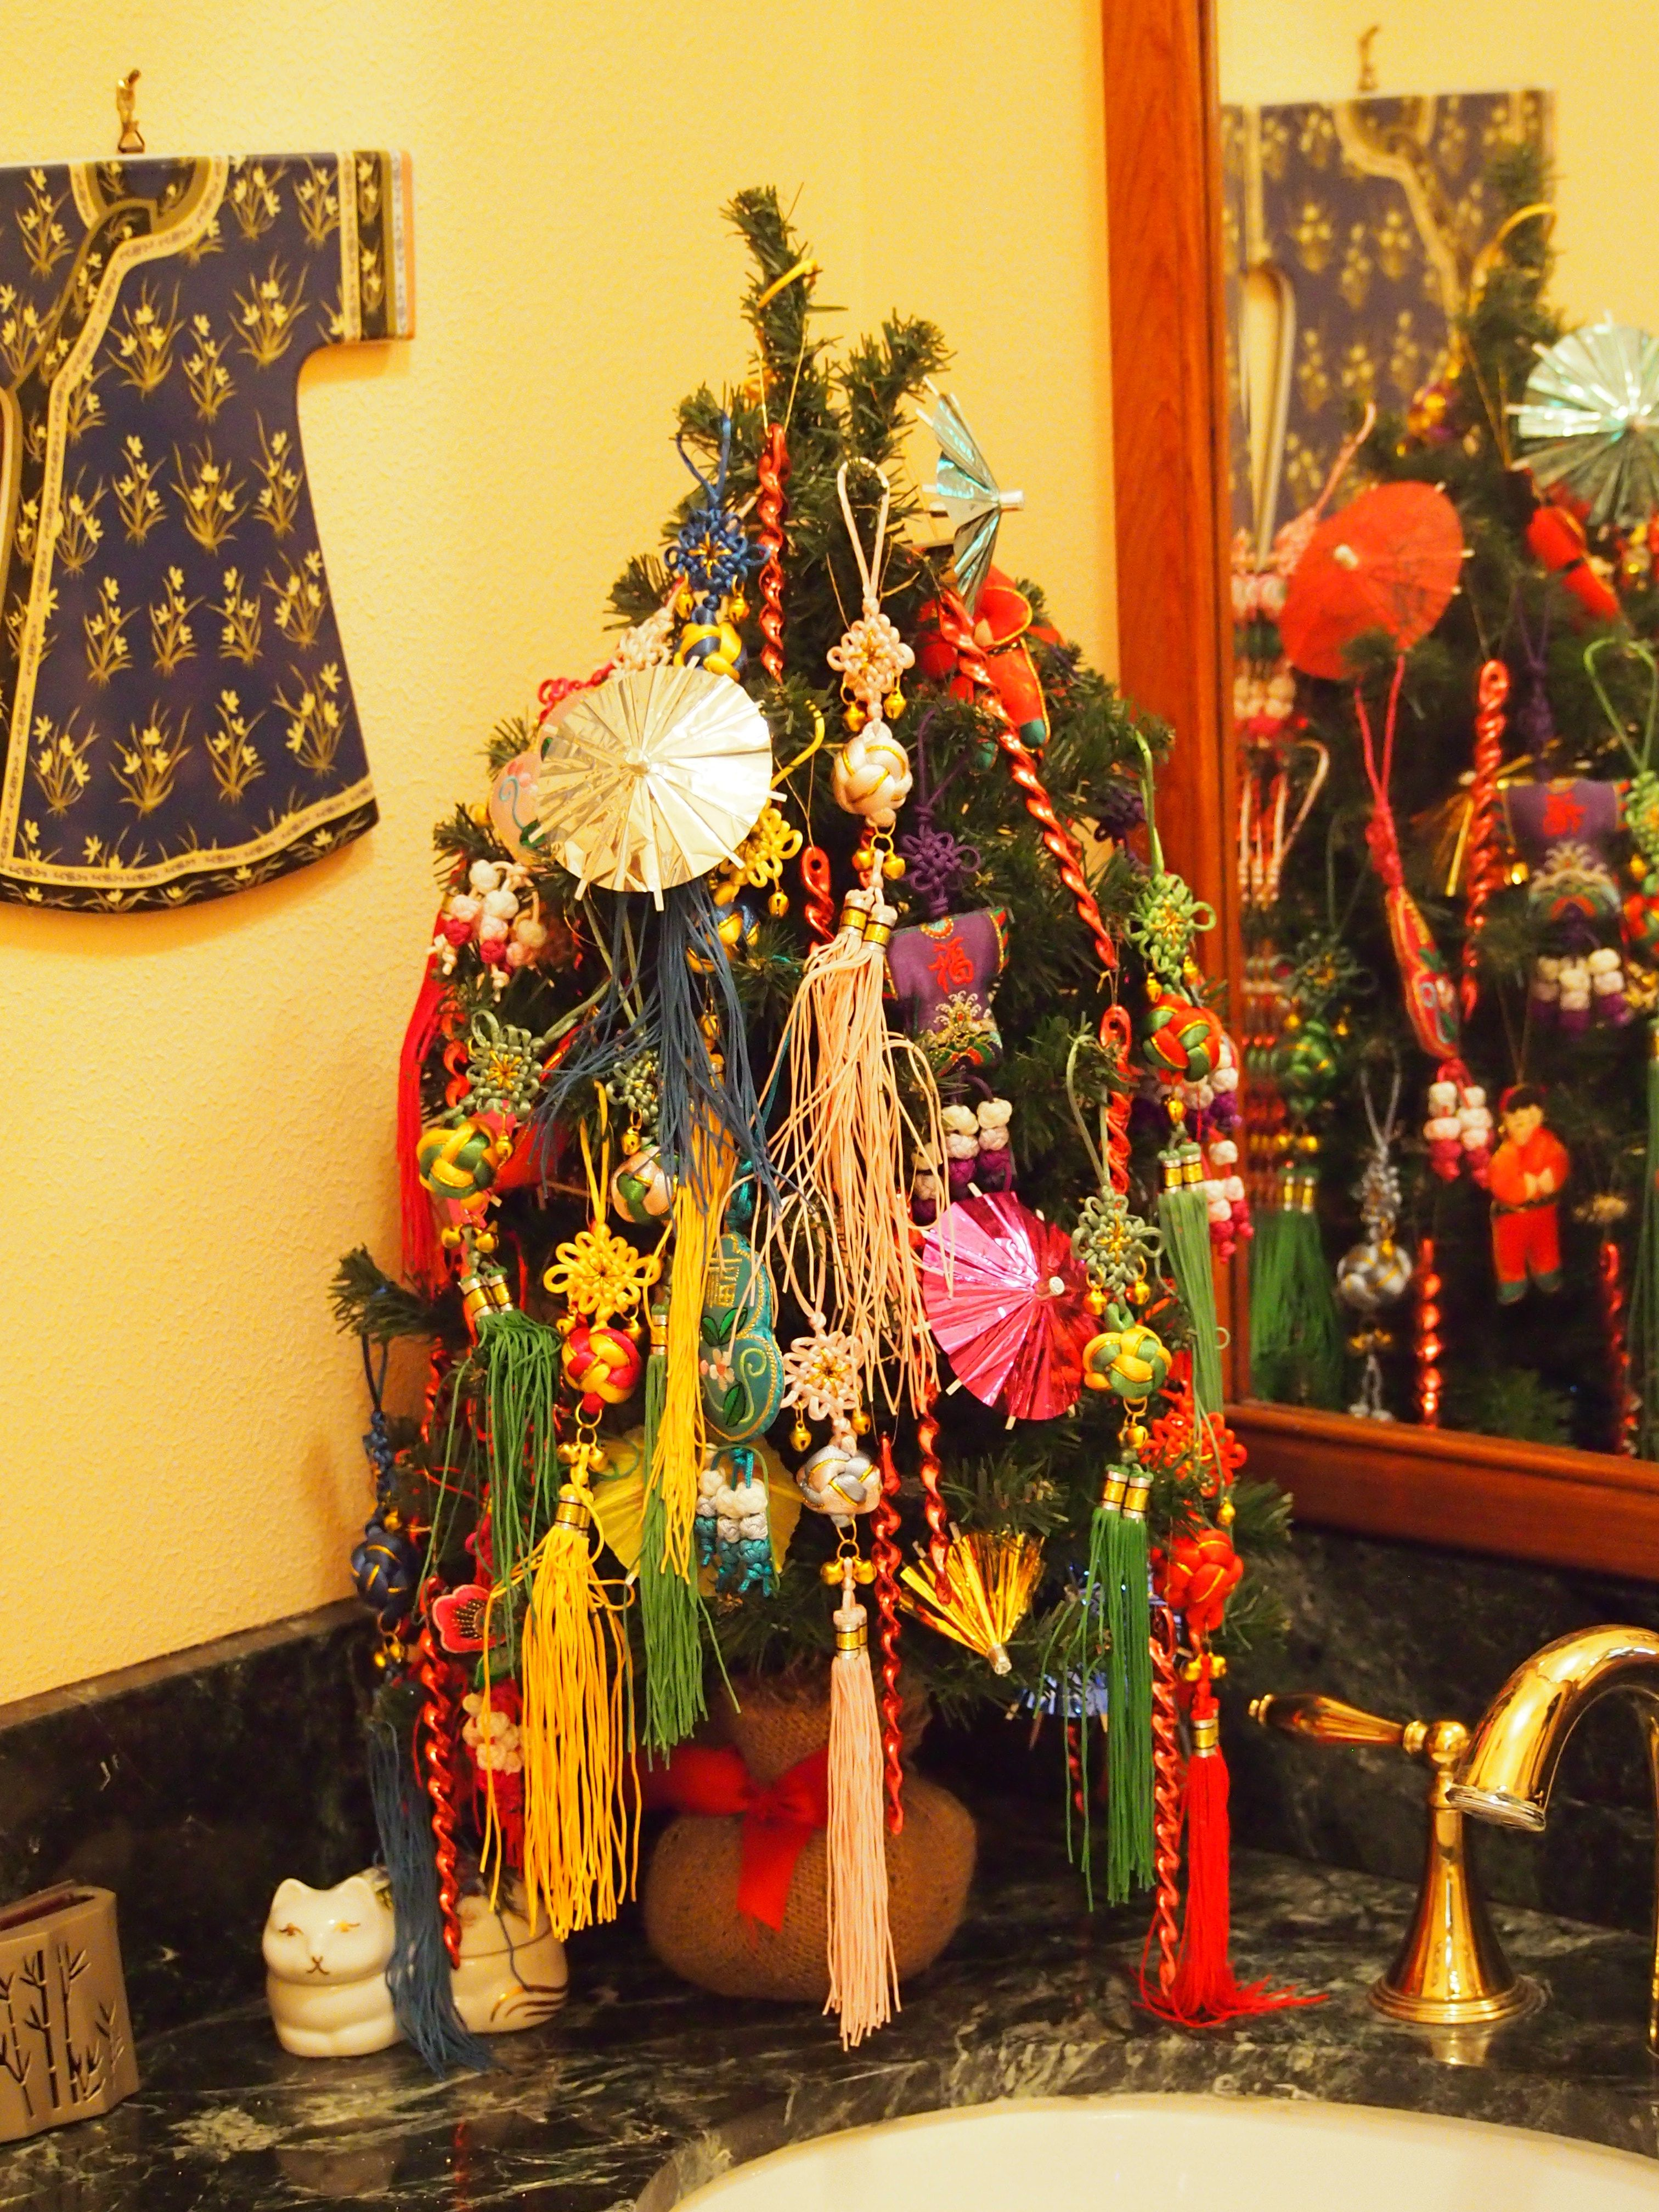 My Asian Christmas tree in bath off foyer Some ornaments I bought